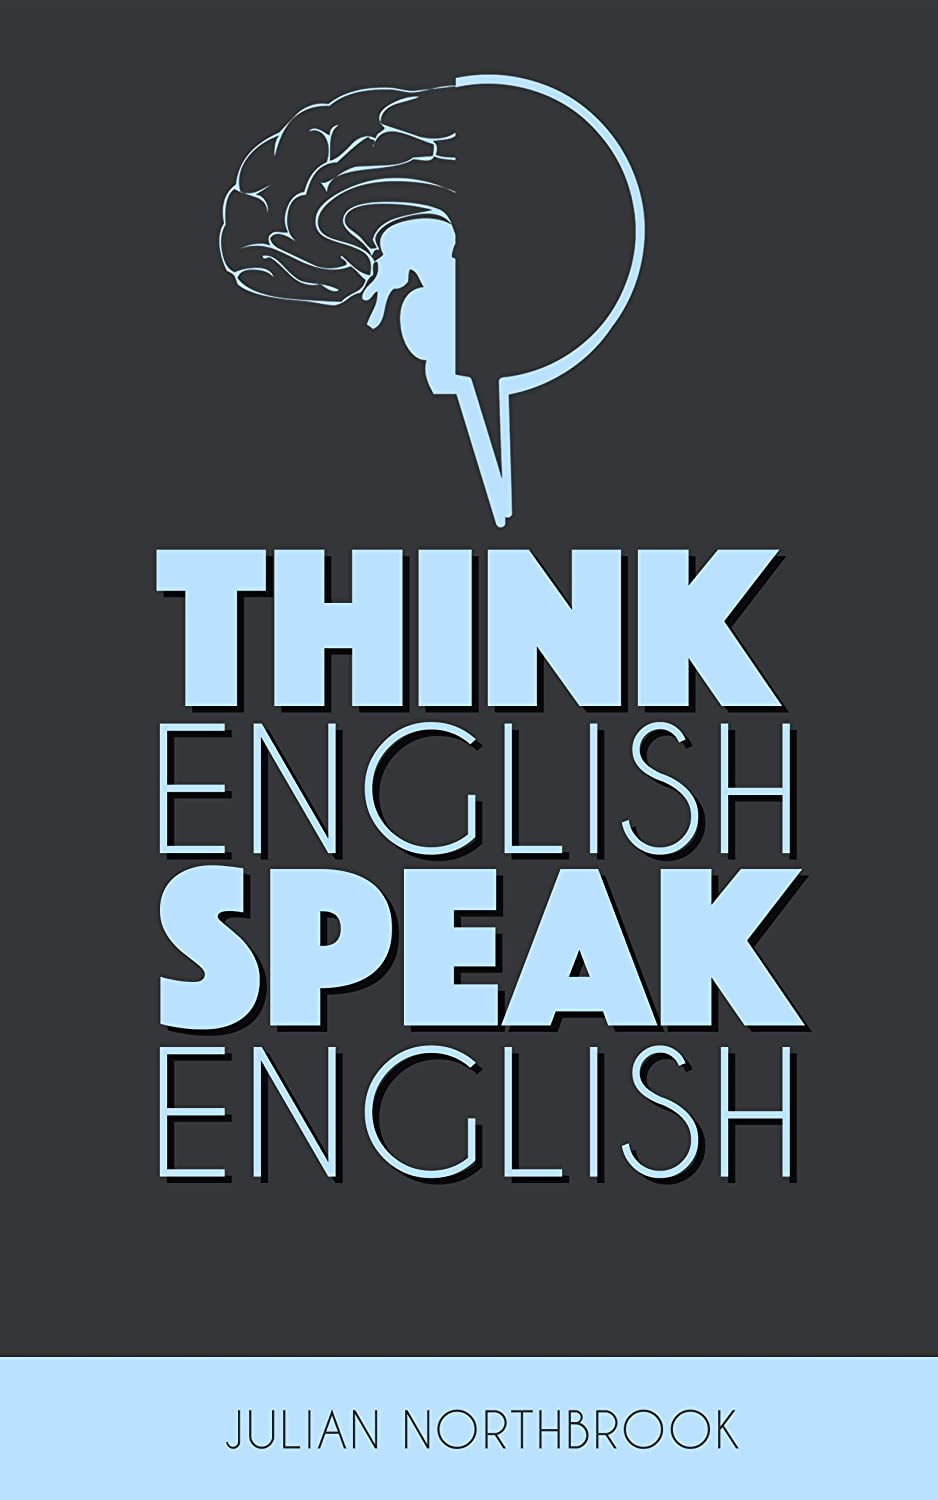 Think English, Speak English: How to Stop Performing Mental ...